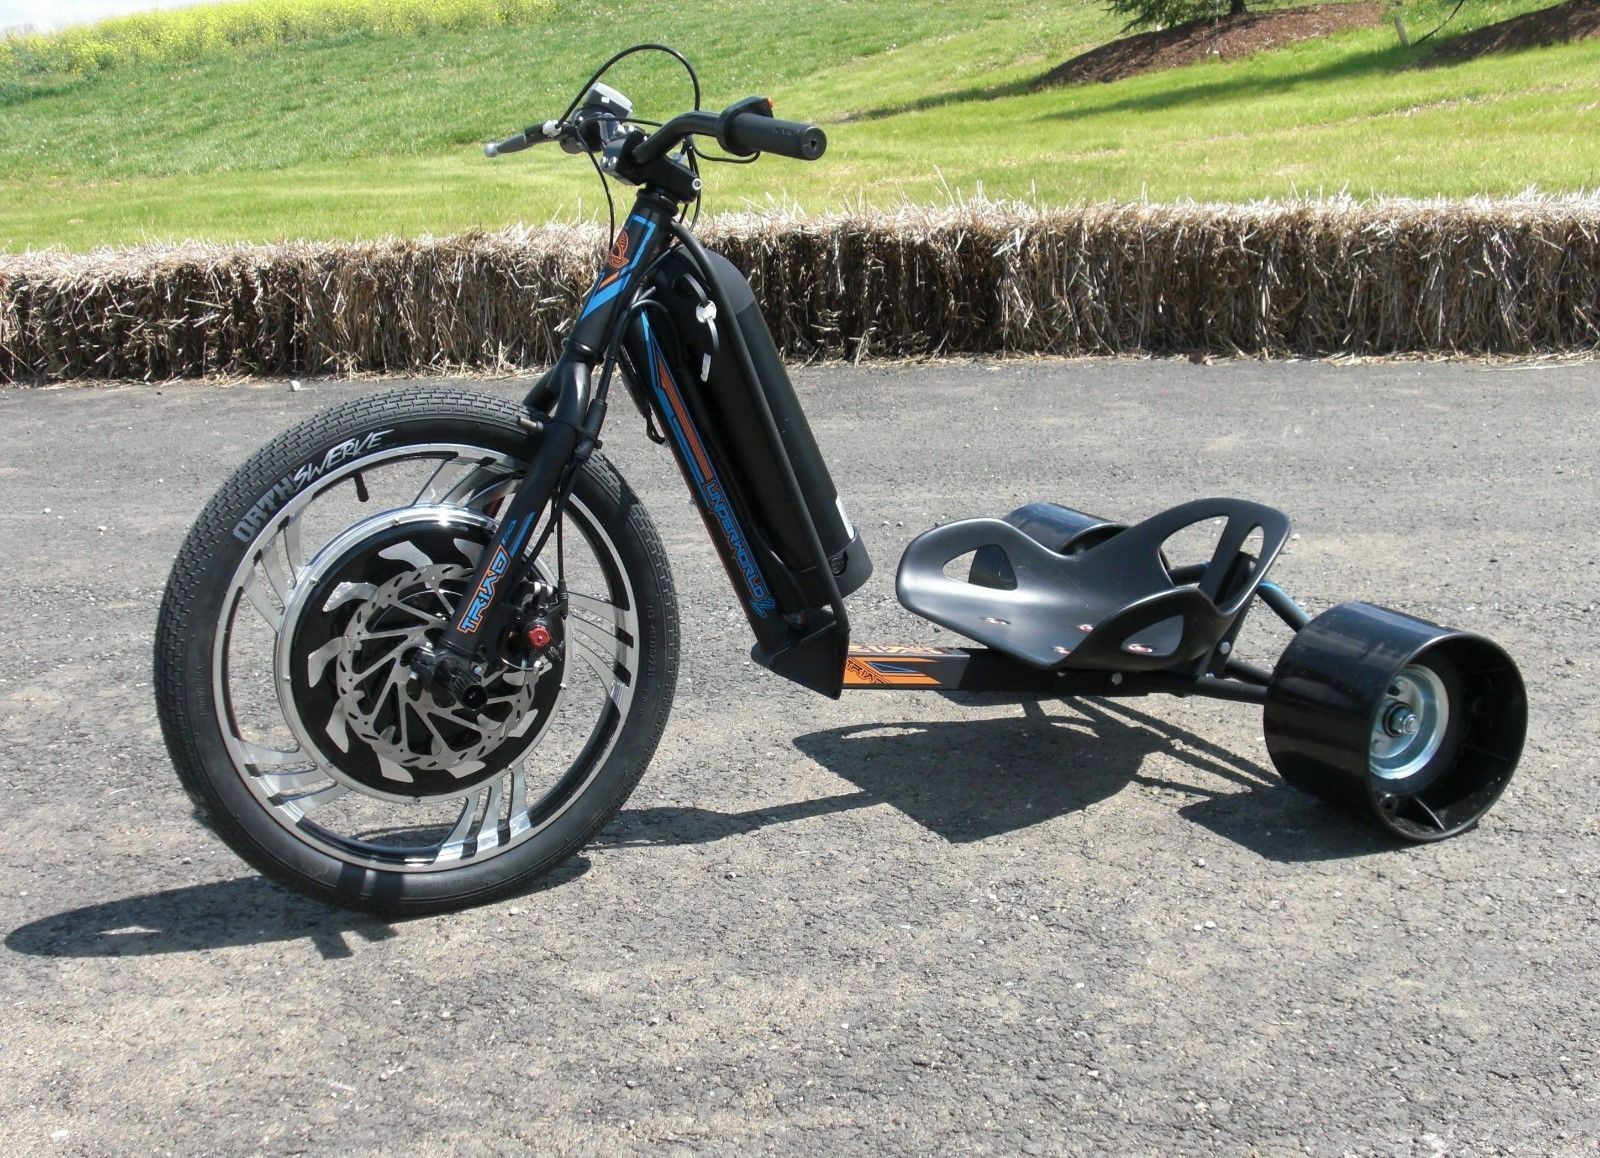 61 BUILD PLANS FOR DRIFT TRIKE, BUILD TRIKE DRIFT PLANS FOR